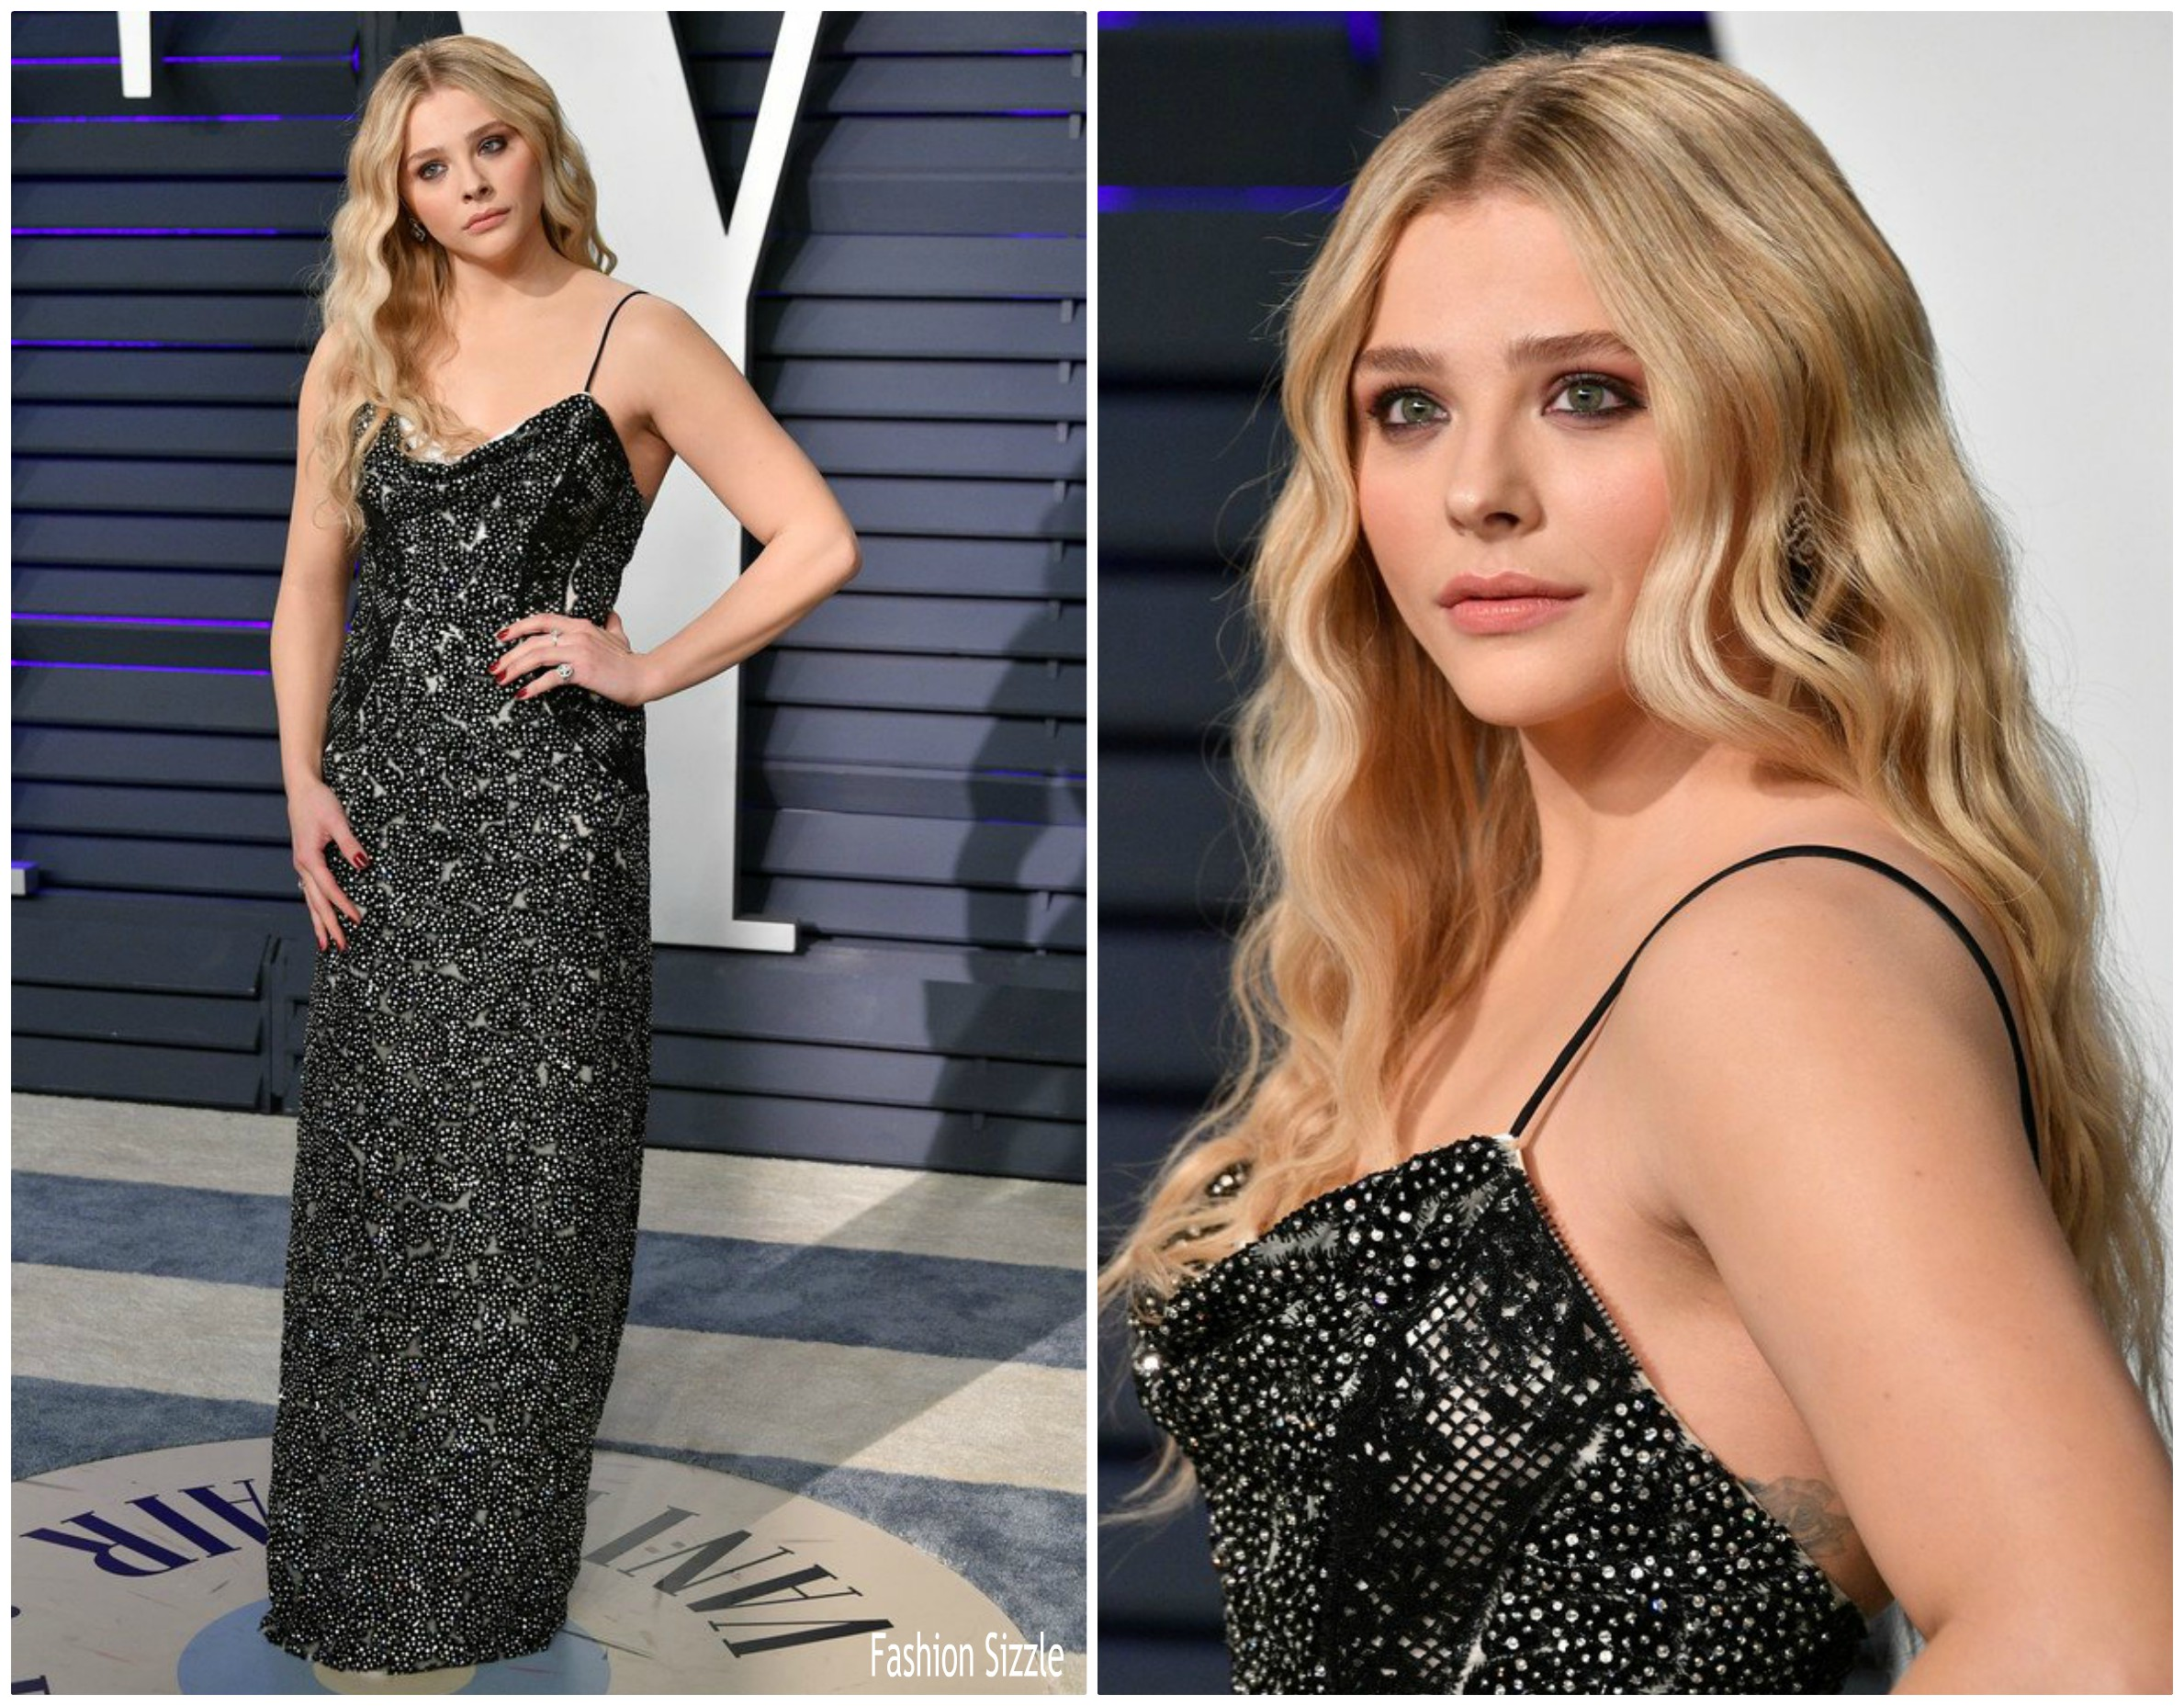 chloe-grace-moretz-in-louis-vuitton-2019-vanity-fair-oscar-party